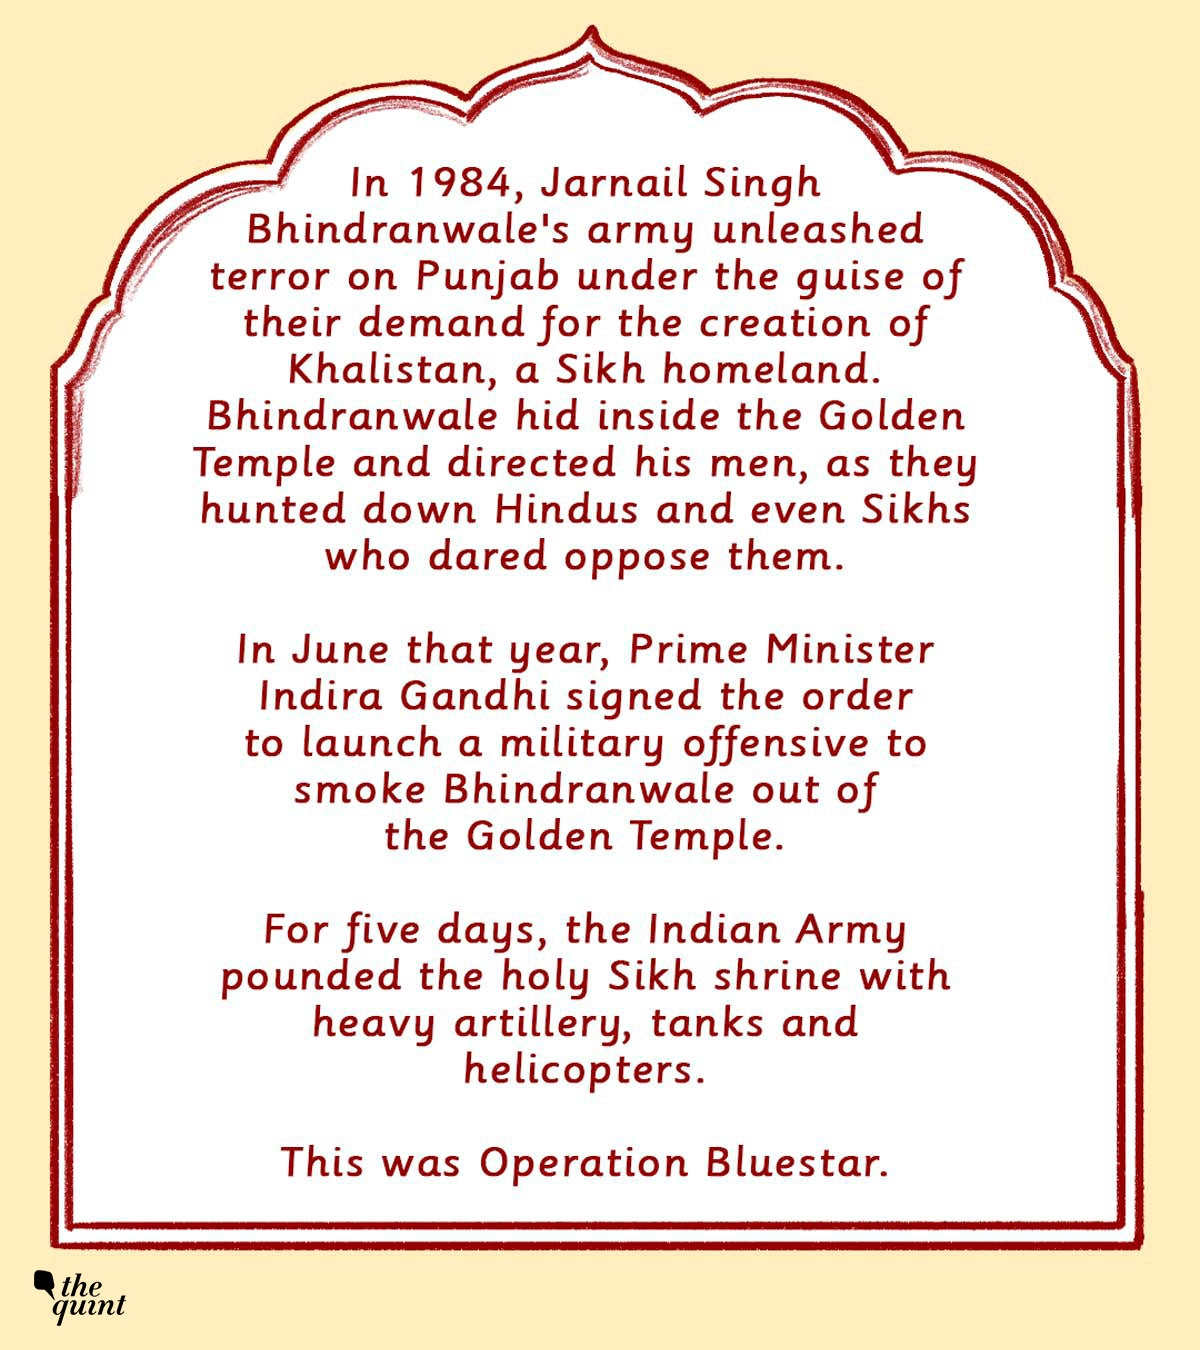 Graphic Novel: The Bloody History of Bhindranwale and Op